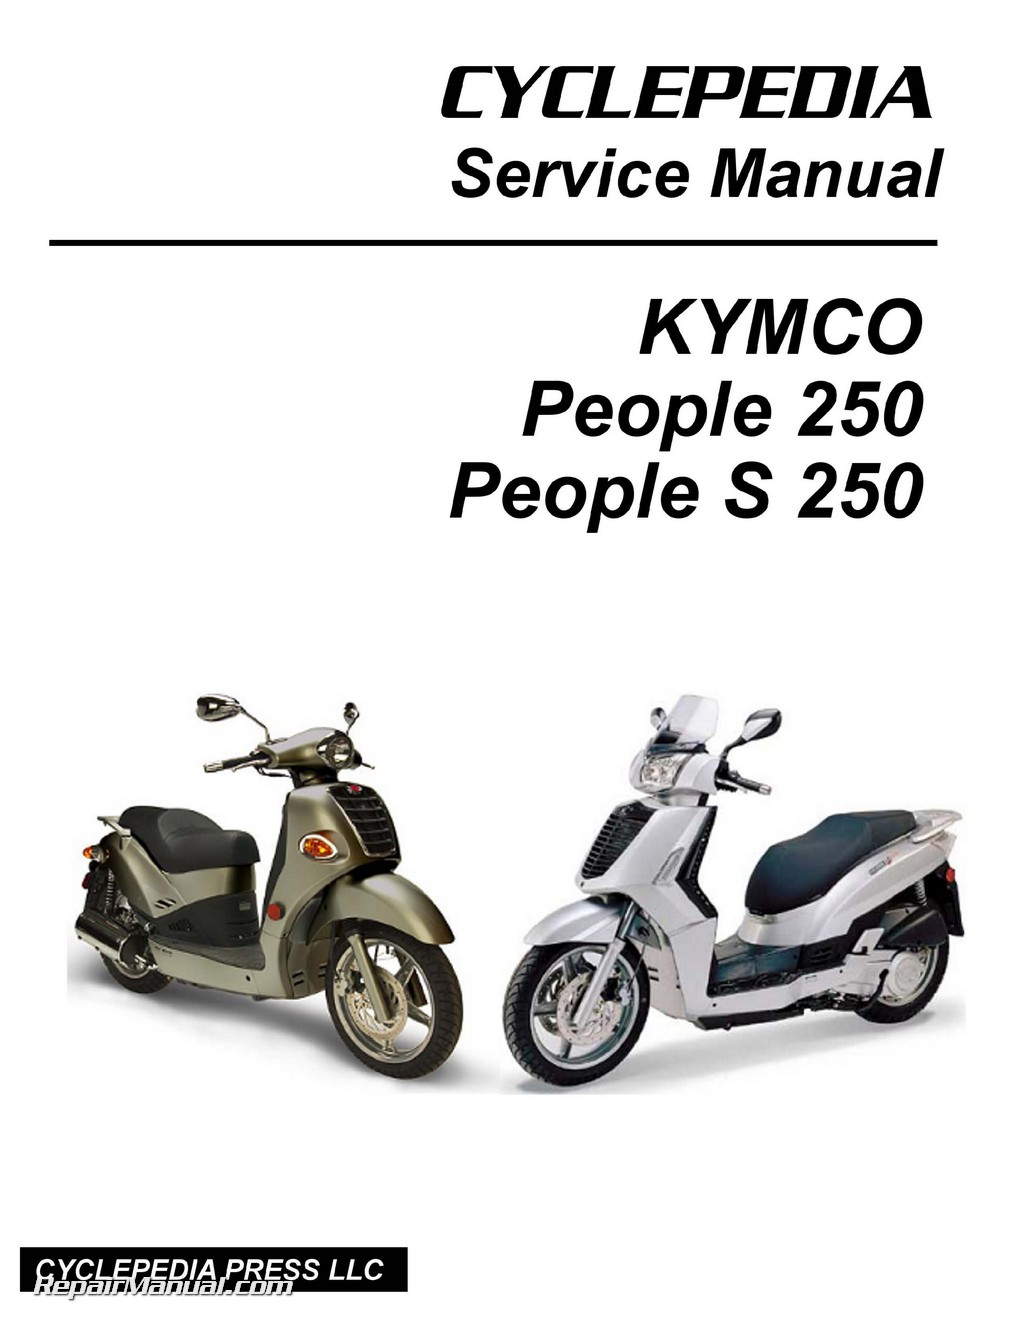 Kymco Scooter Manual